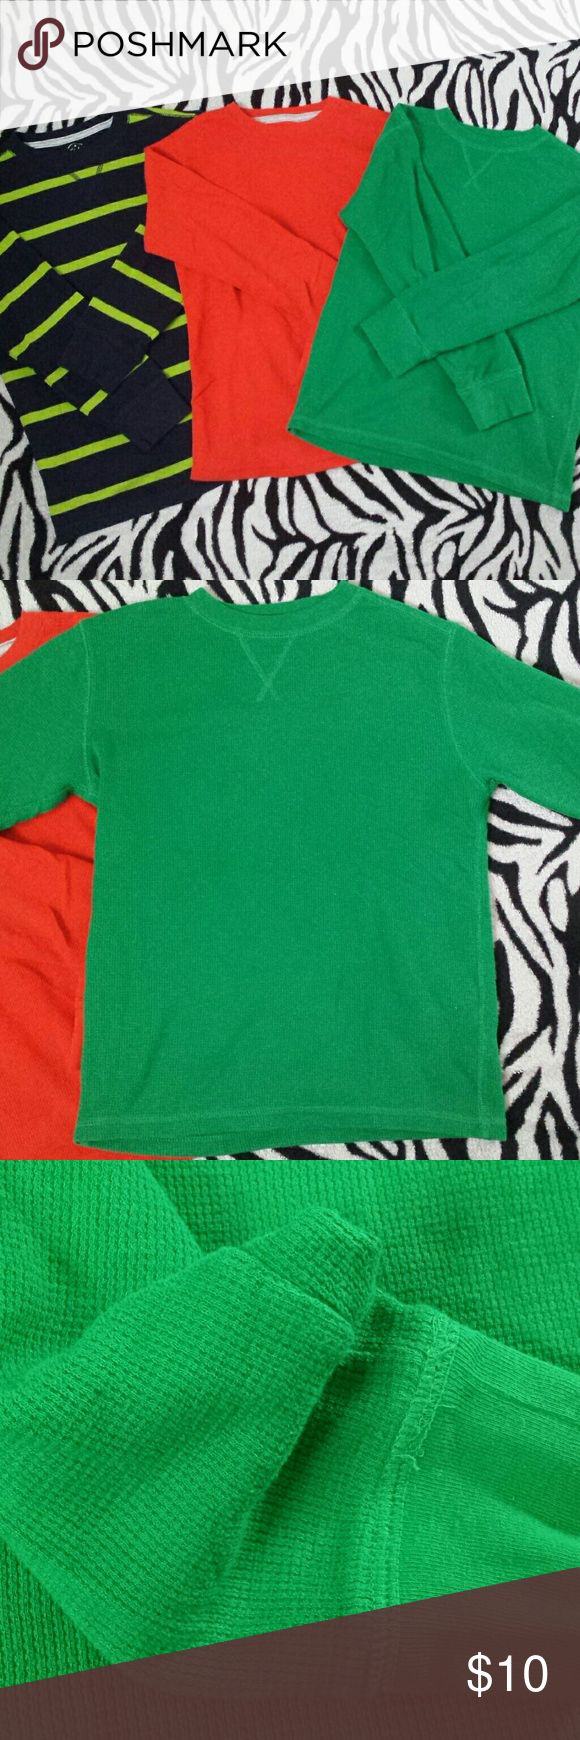 Faded Glory long sleeves All the same size. Orange has a tiny marking on chest area. Green has a tiny hole in left wrist area along with some threads loose. Threading is gine and isn't unraveling. Striped has nothing that I could identify. Pet and smoke free home. Vacuum seal storage. Faded Glory Shirts & Tops